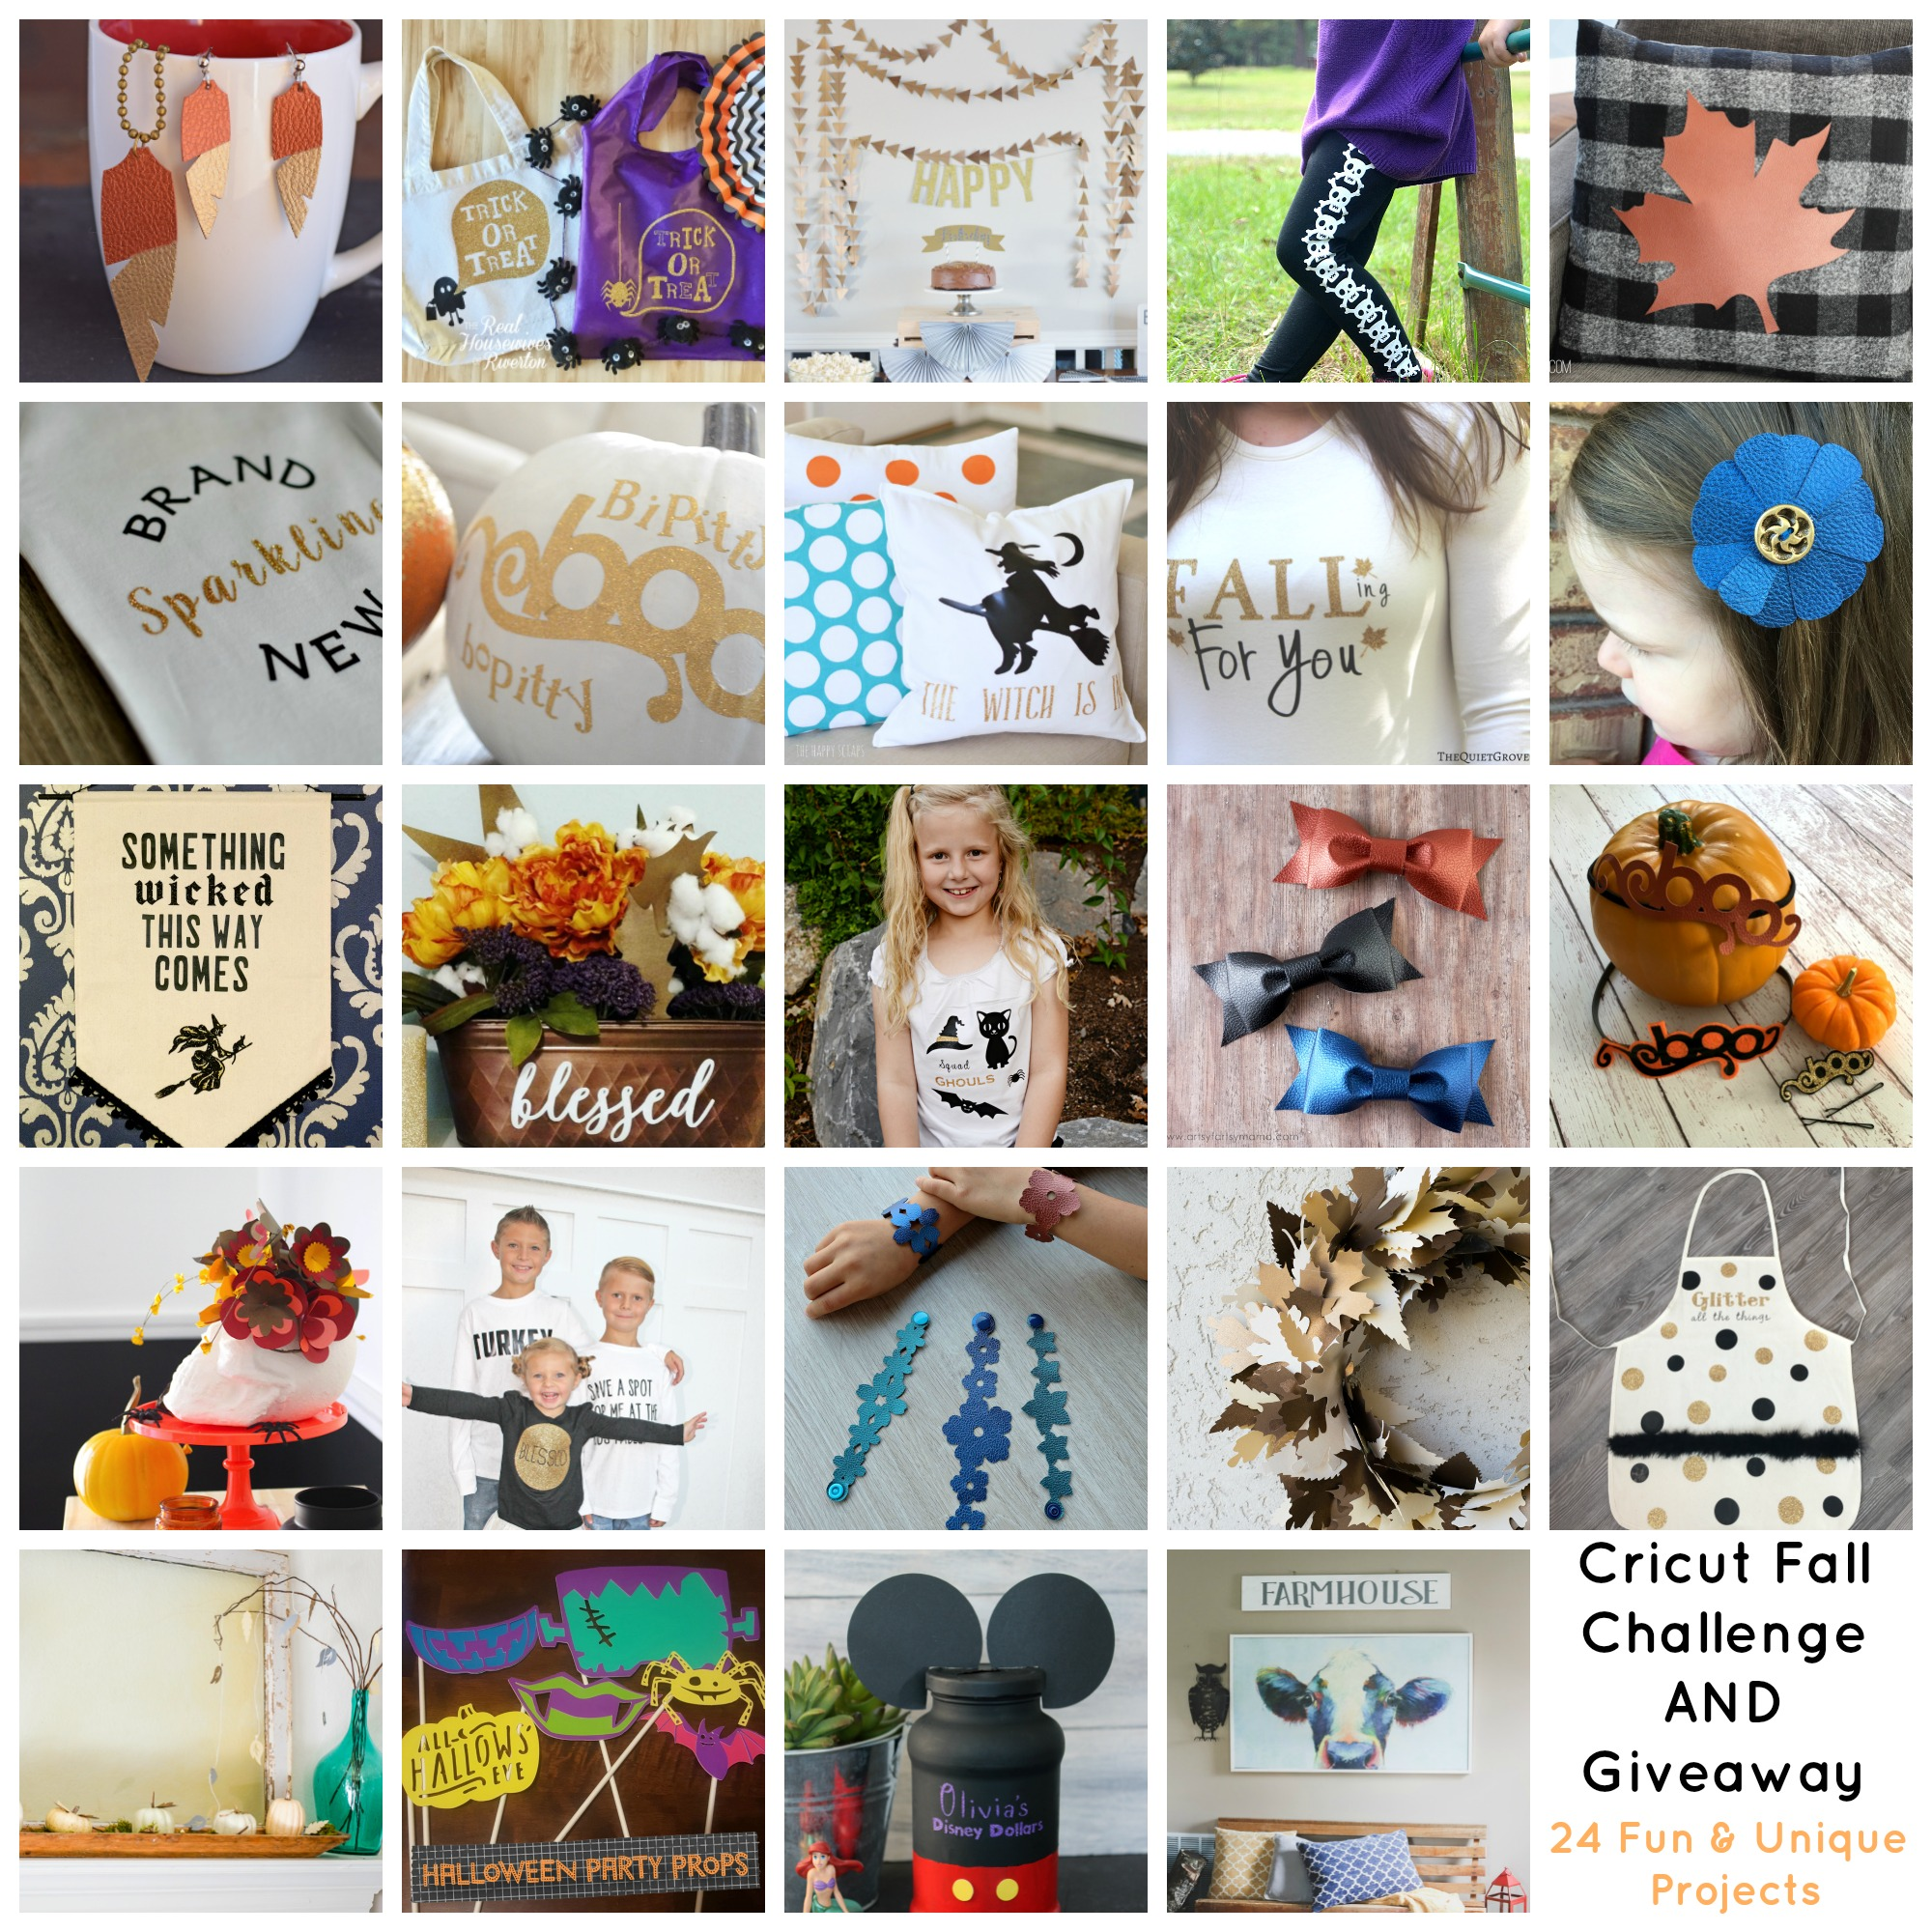 Cricut Challenge and Giveaway Fall 2016